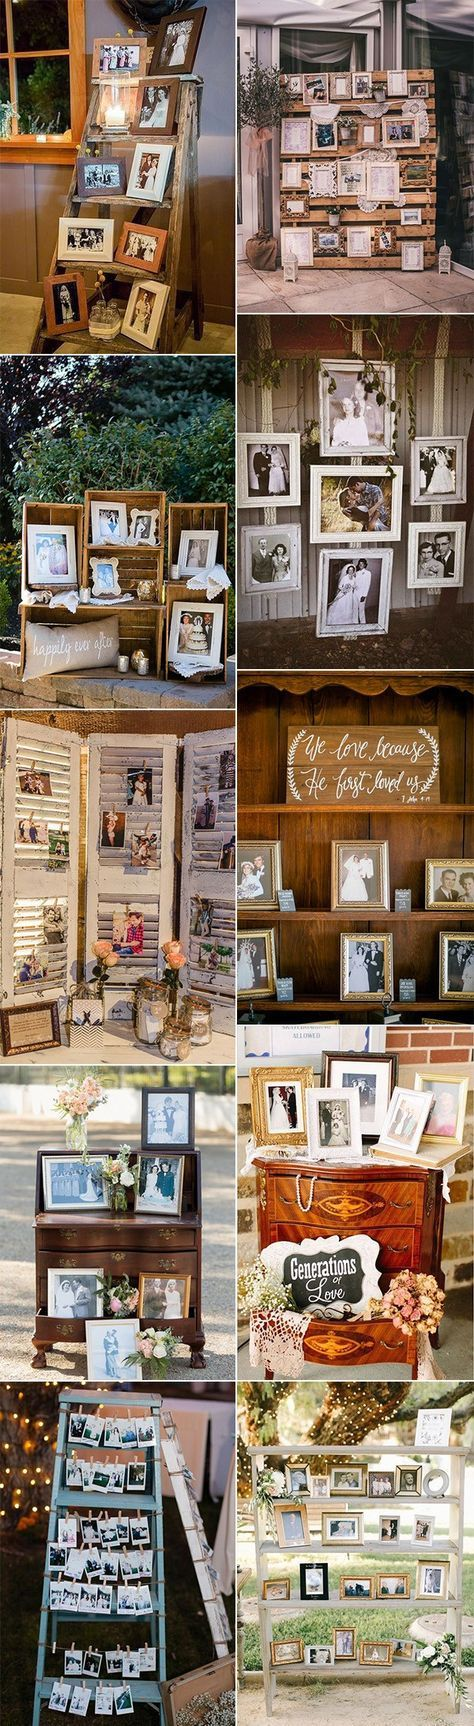 Wedding room decoration ideas 2018   Adorable Vintage Wedding Ideas for  Trends  Vintage wedding